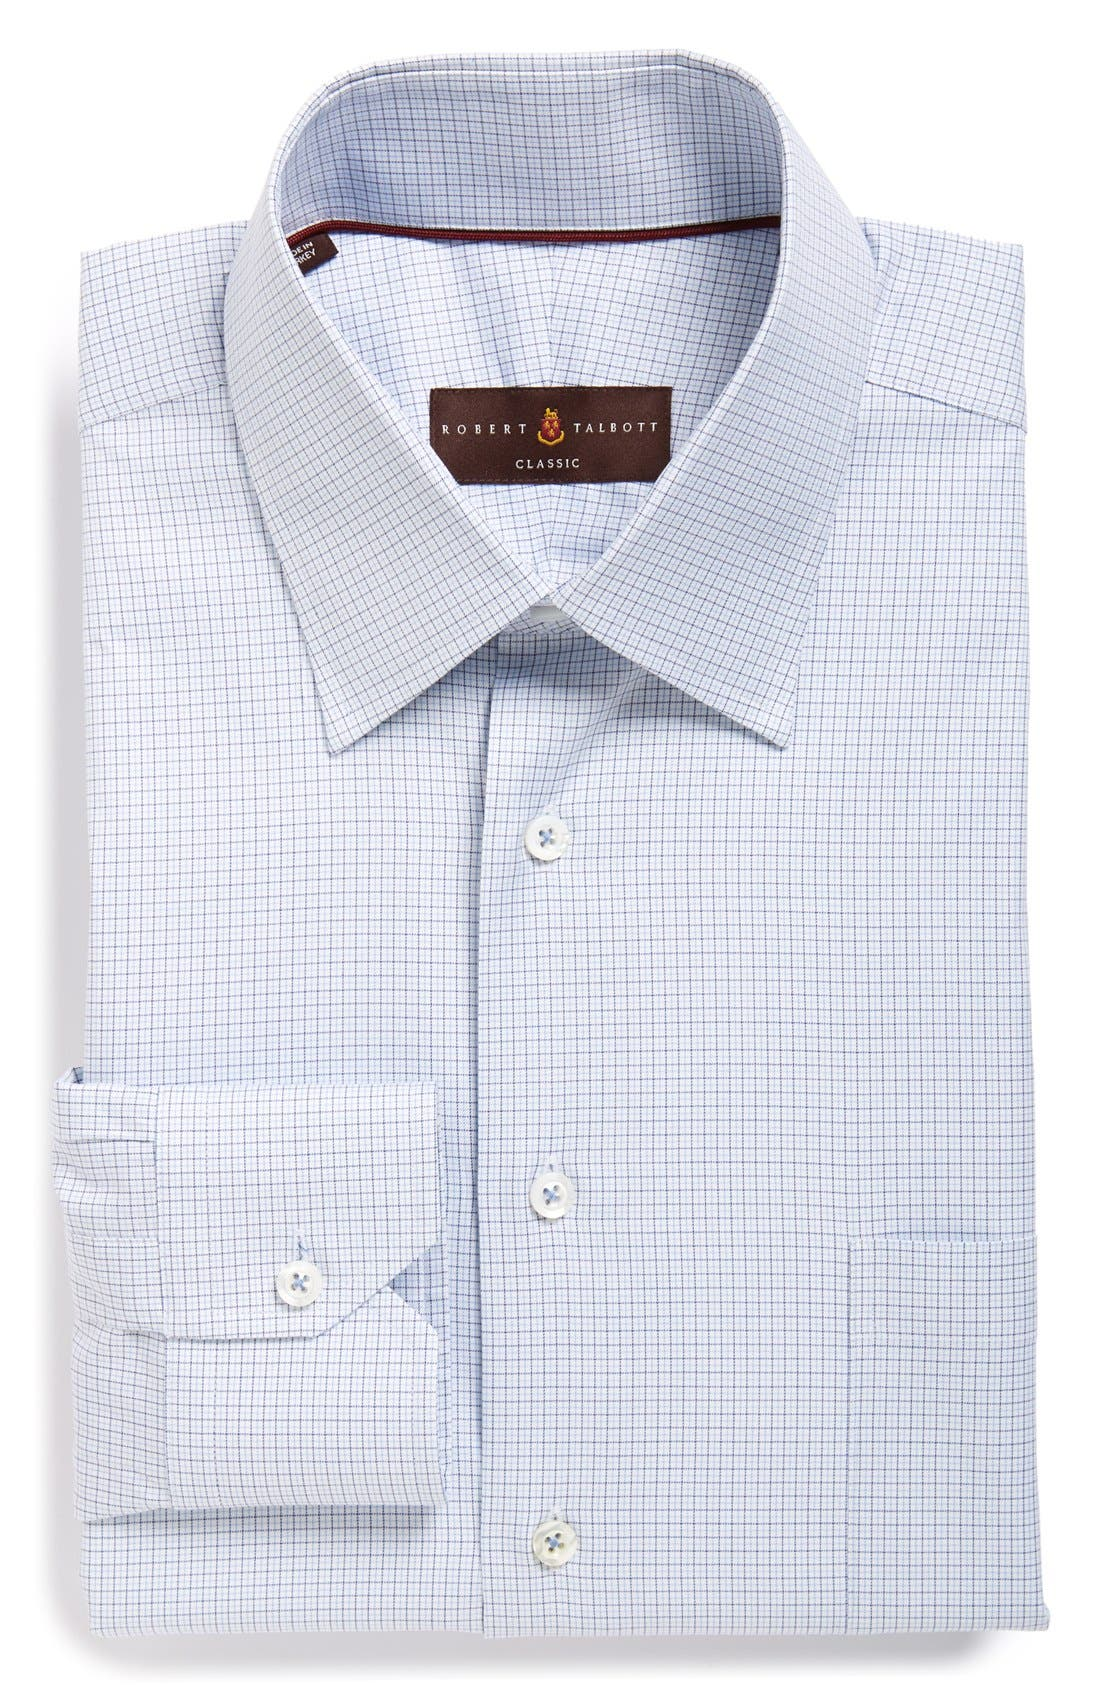 Alternate Image 1 Selected - Robert Talbott Classic Fit Check Dress Shirt